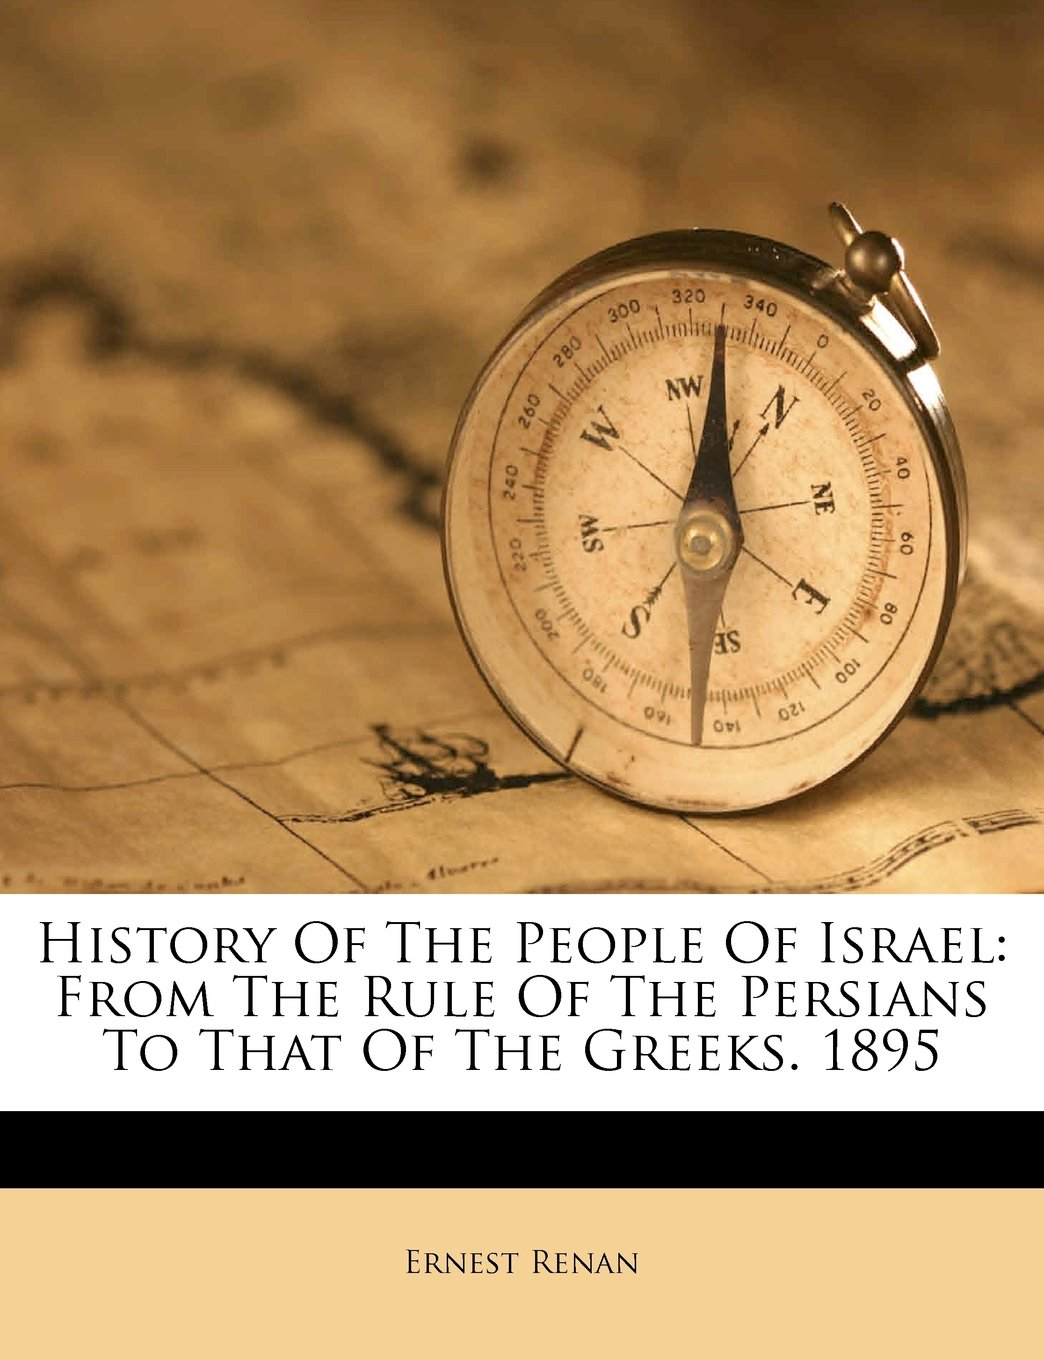 History Of The People Of Israel: From The Rule Of The Persians To That Of The Greeks. 1895 pdf